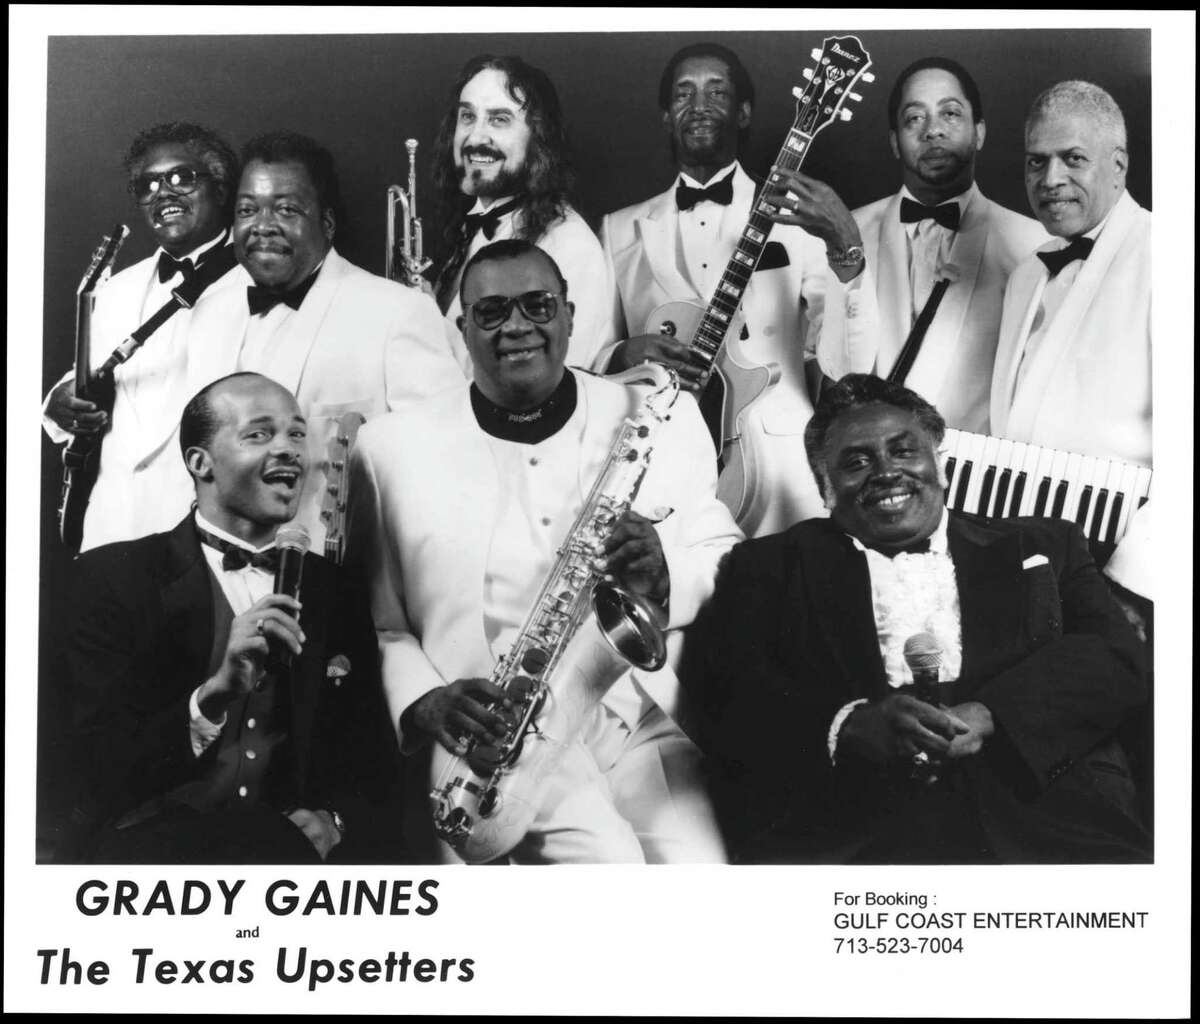 GRADY GAINES AND THE TEXAS UPSETTERS